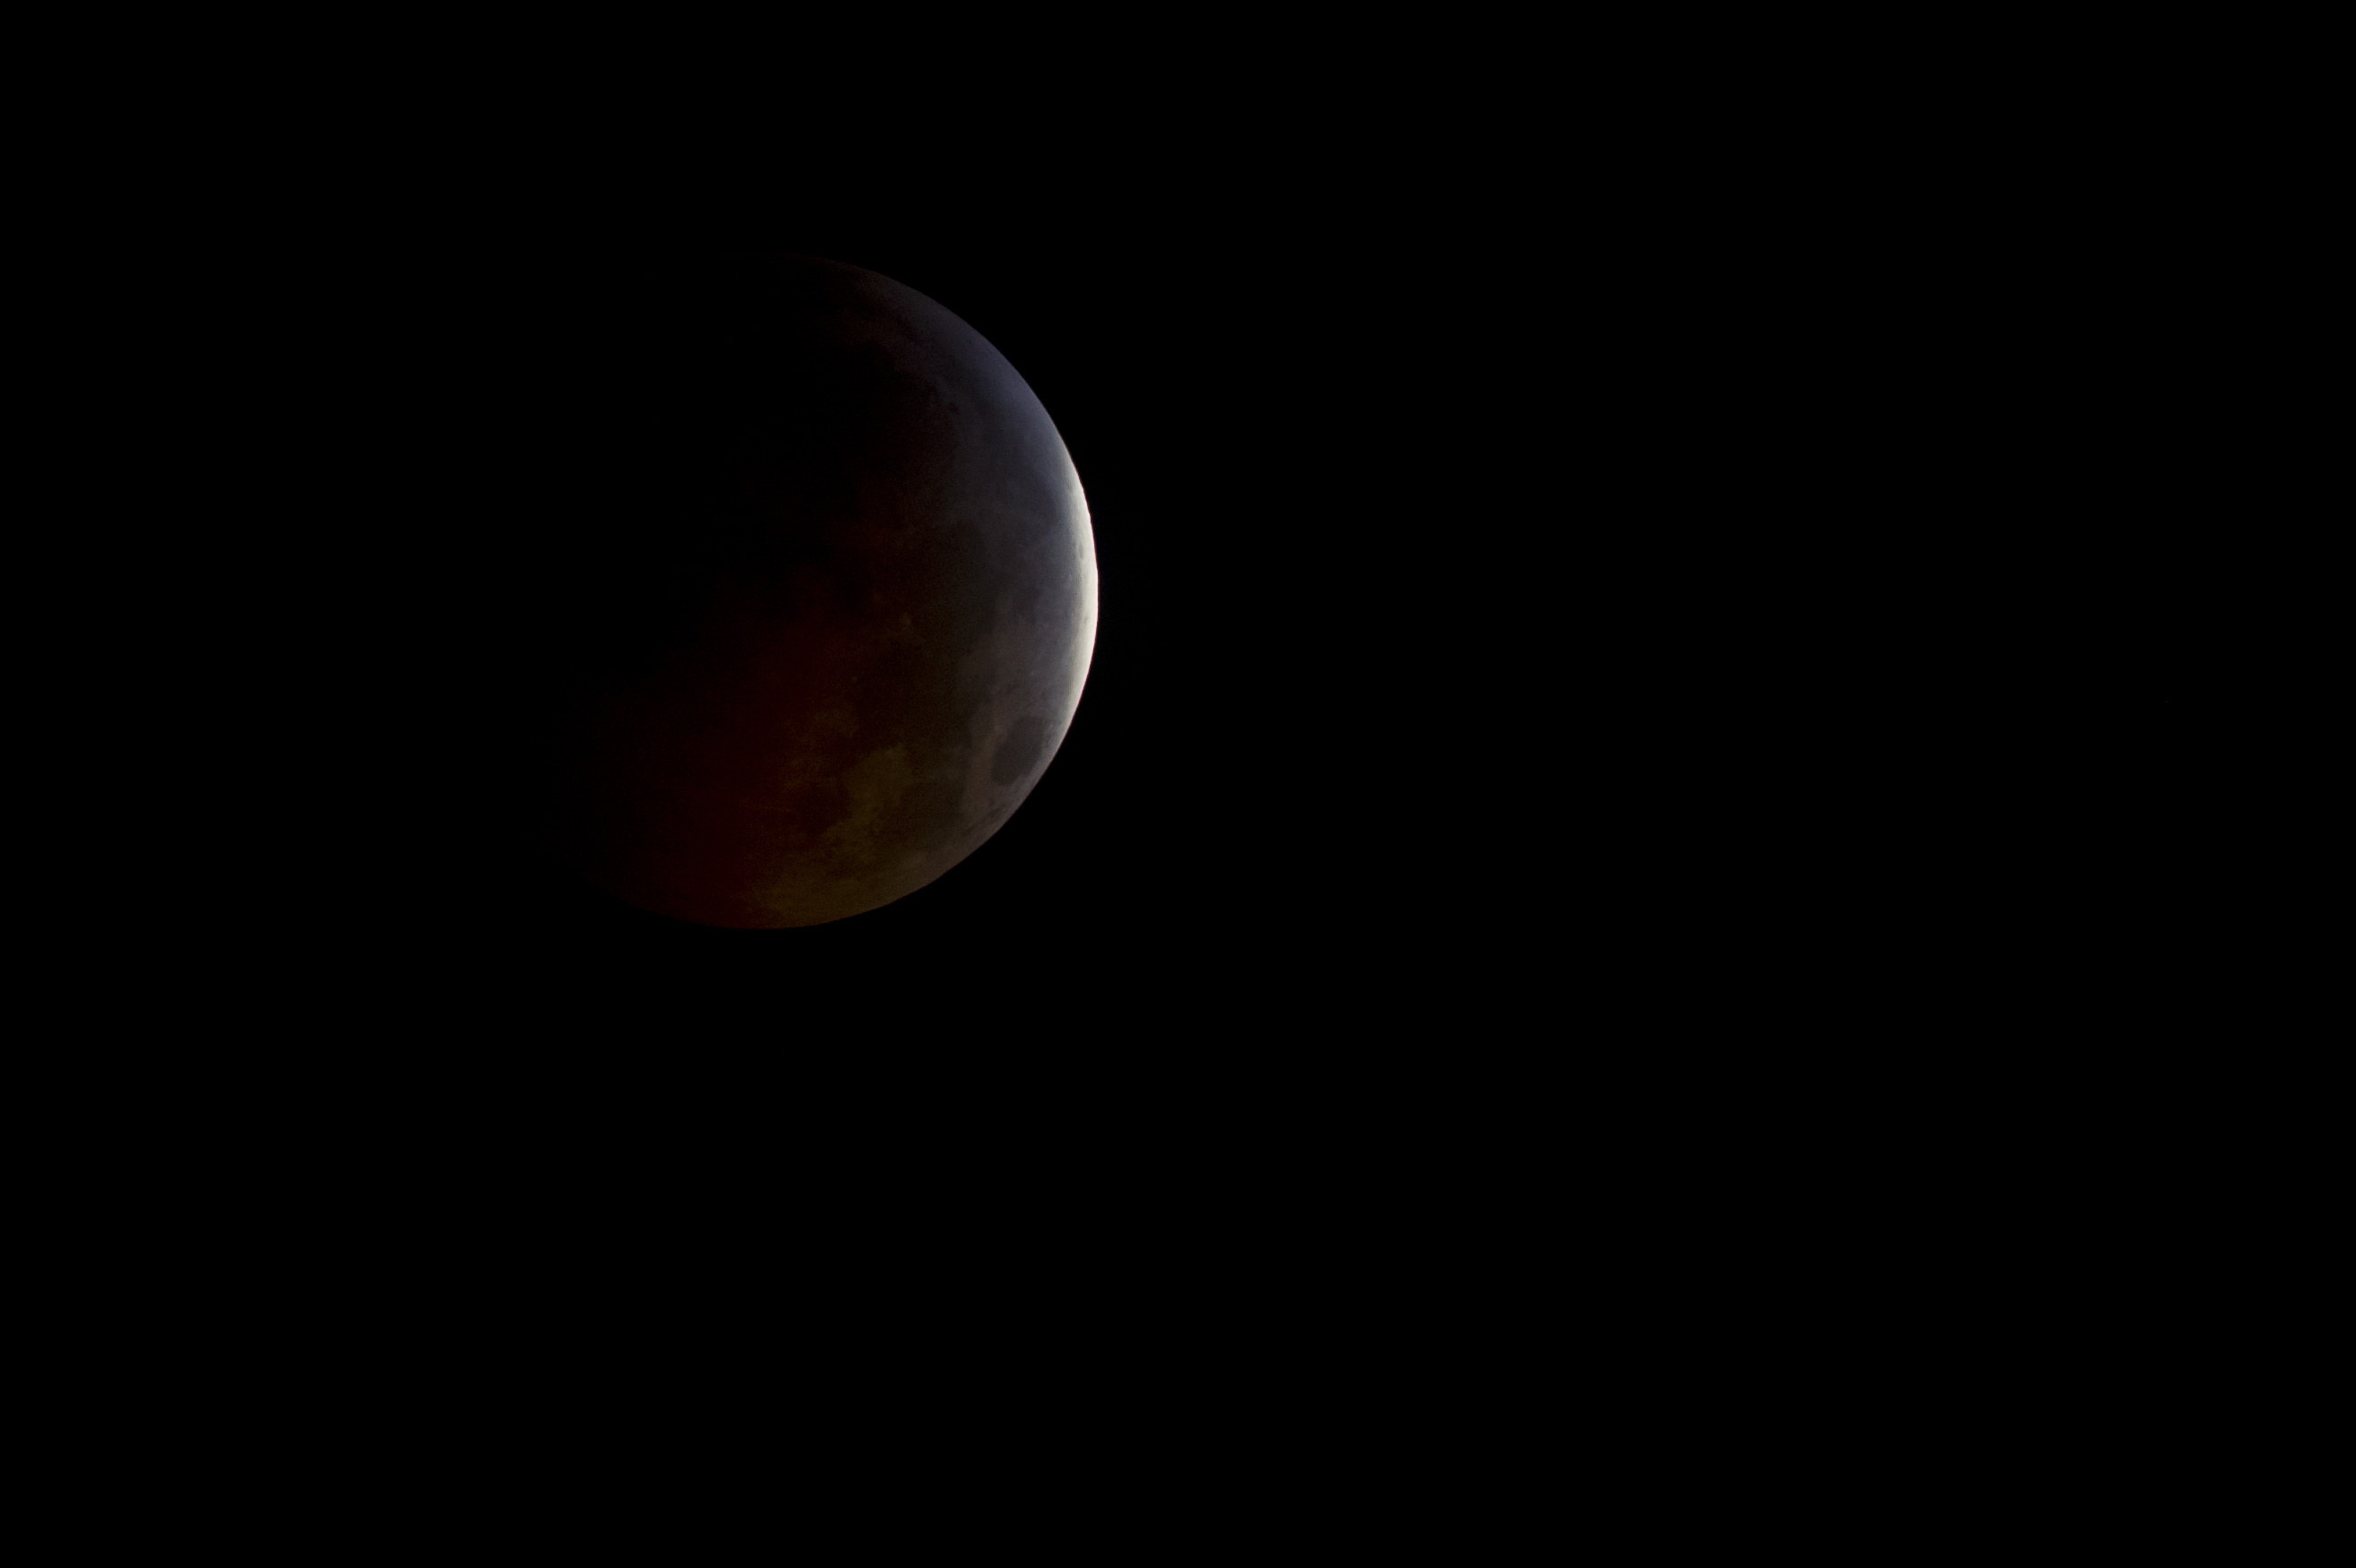 Colouring sheets of the lunar eclipse - Eclipses And Transits Moon Descends Almost Completely Into Shadow During 2010 Eclipse